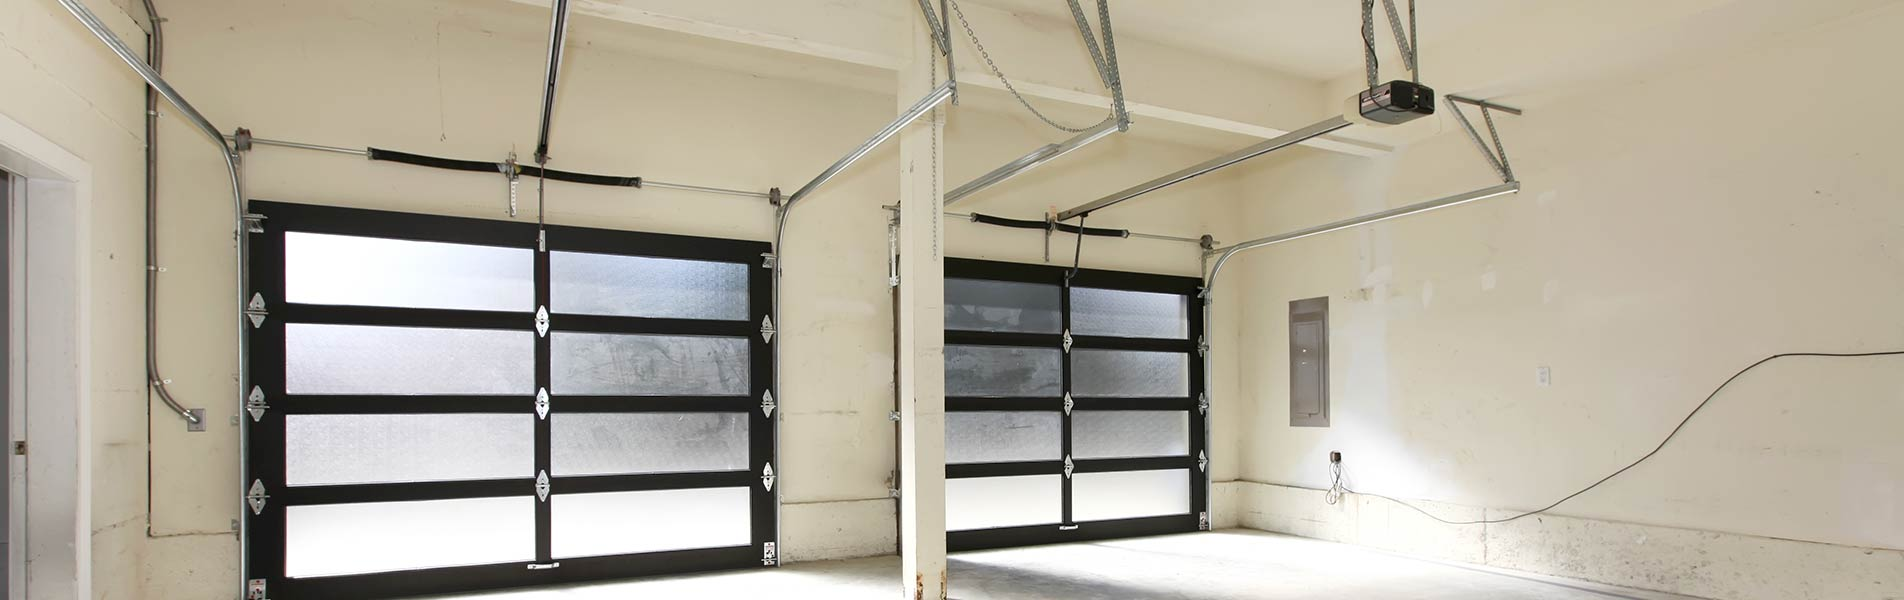 Eagle Garage Door Service Olympia Fields, IL 708-801-3049